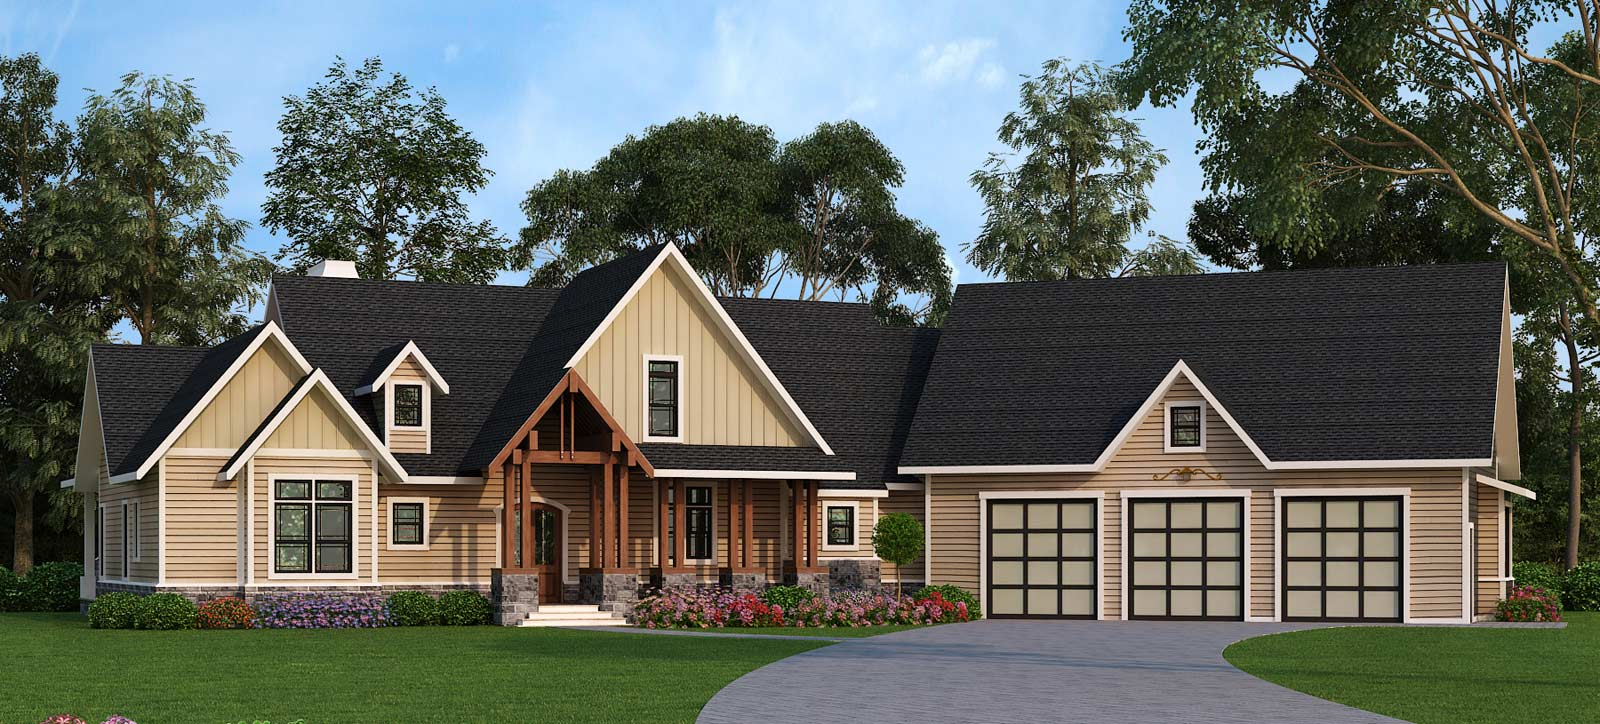 Mountain ranch with expansion and options 12279jl for Fairhope house plan